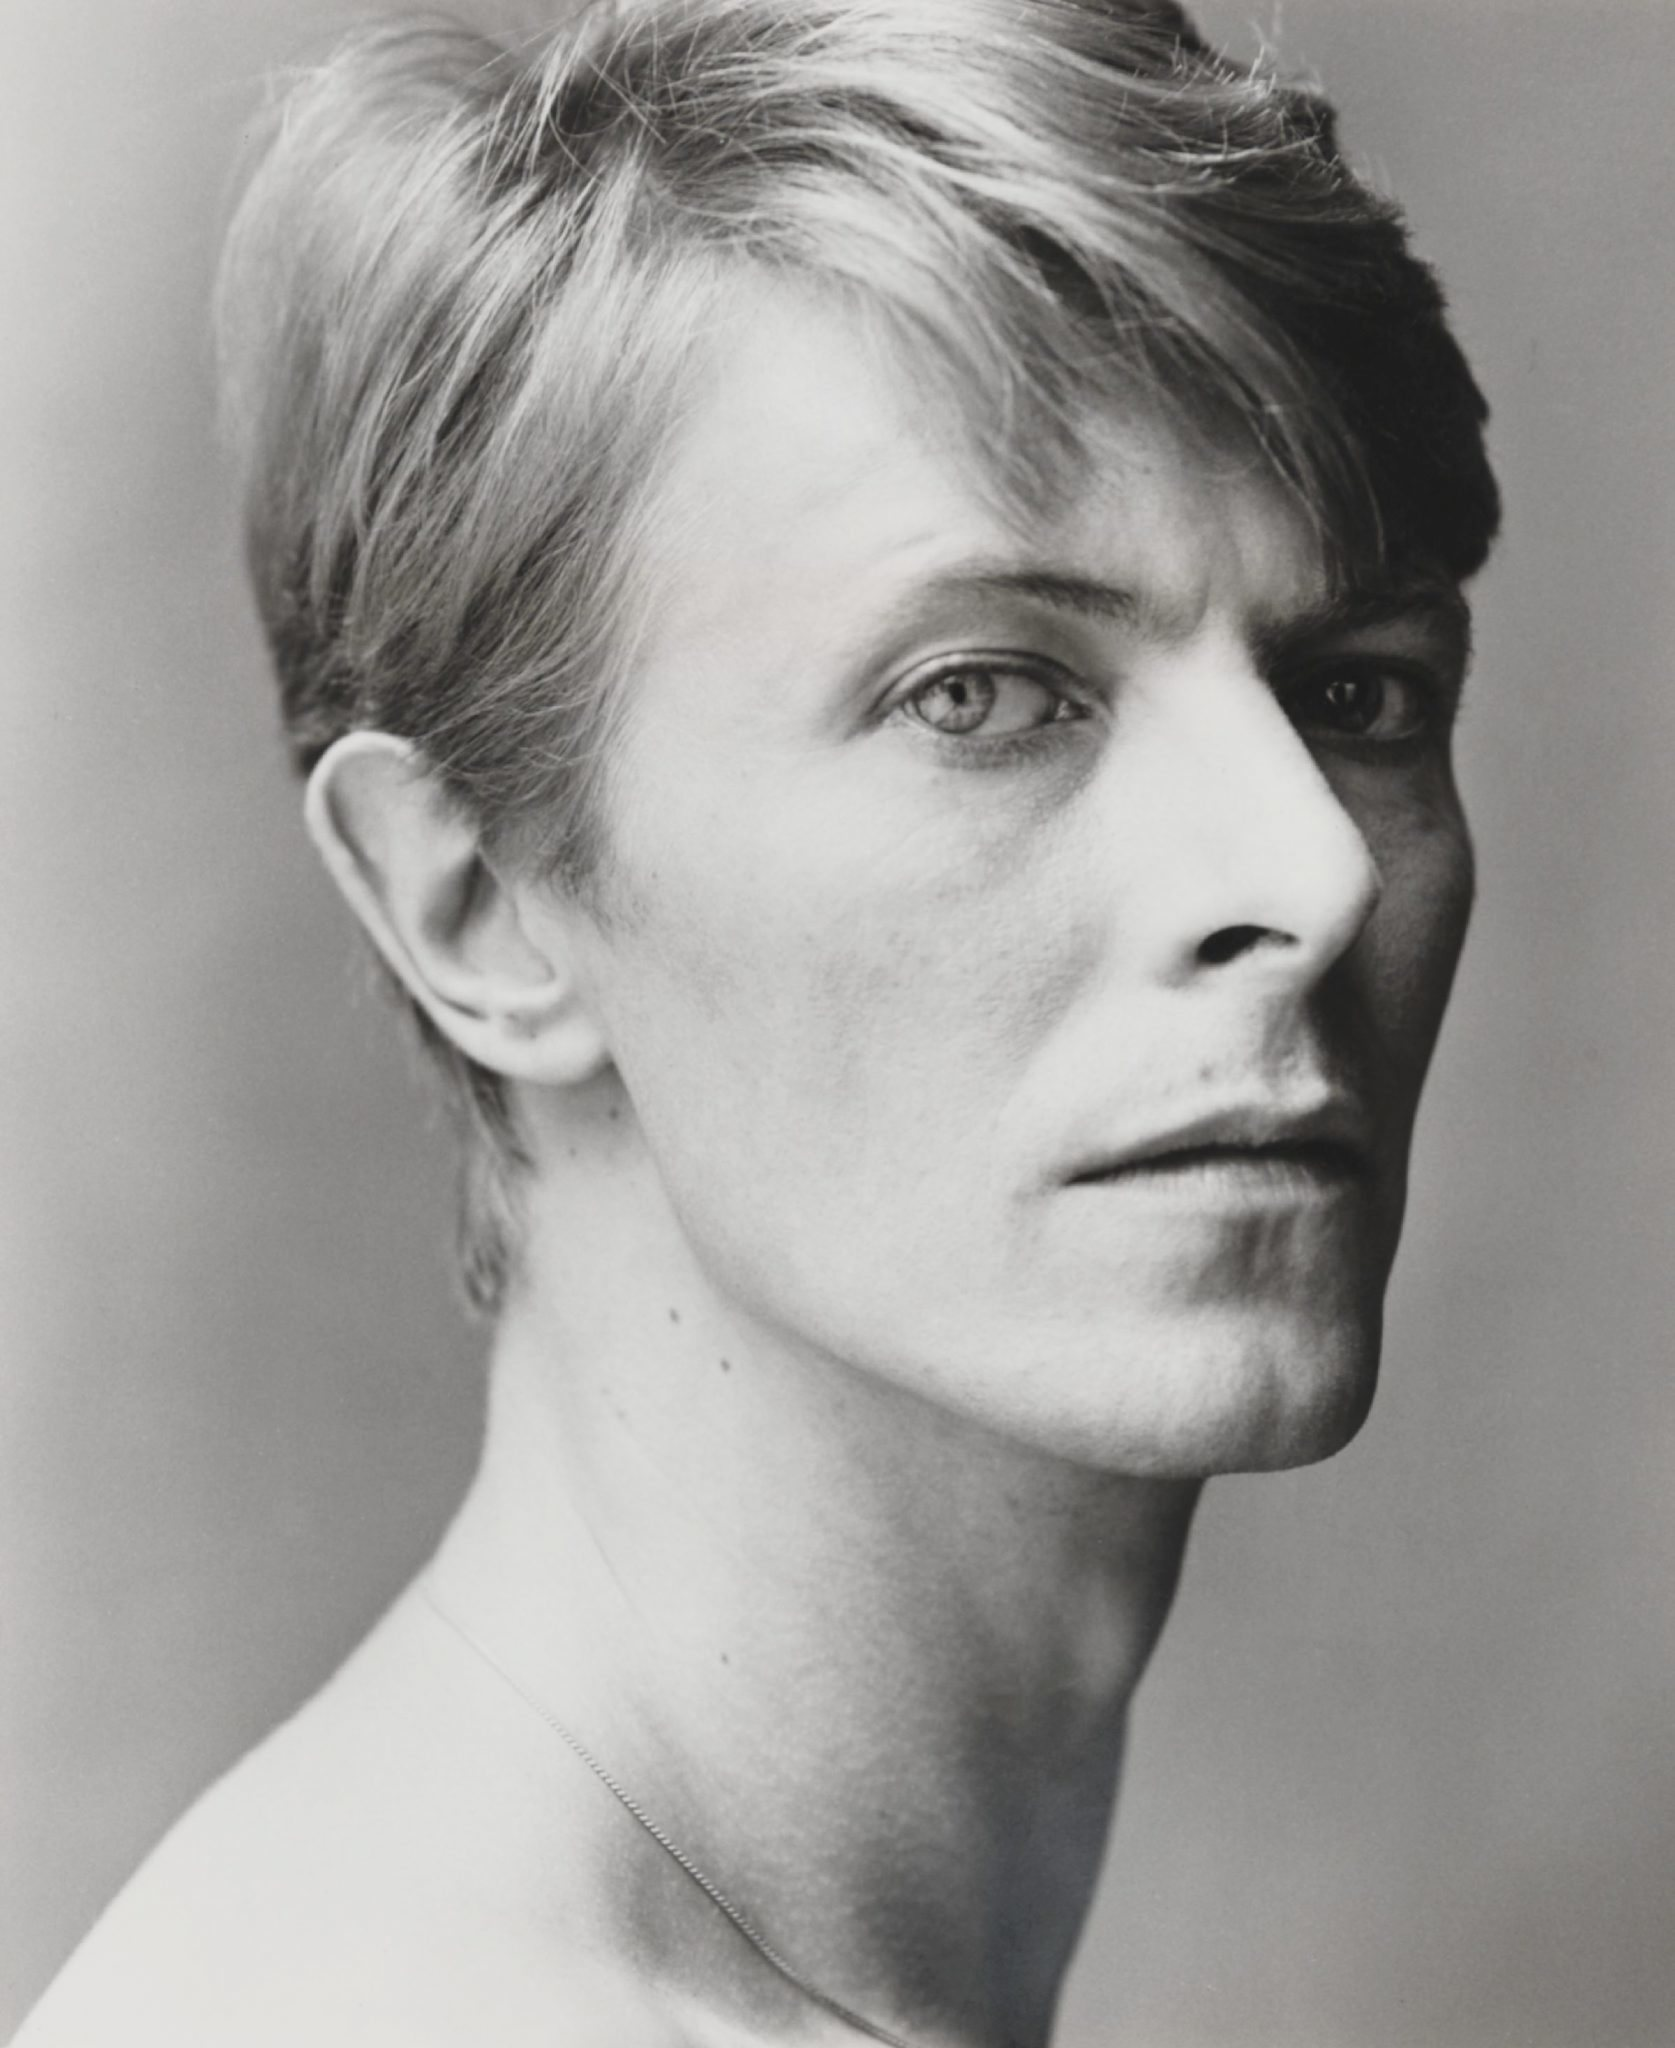 Lord Snowdon, 'David Bowie', 1978